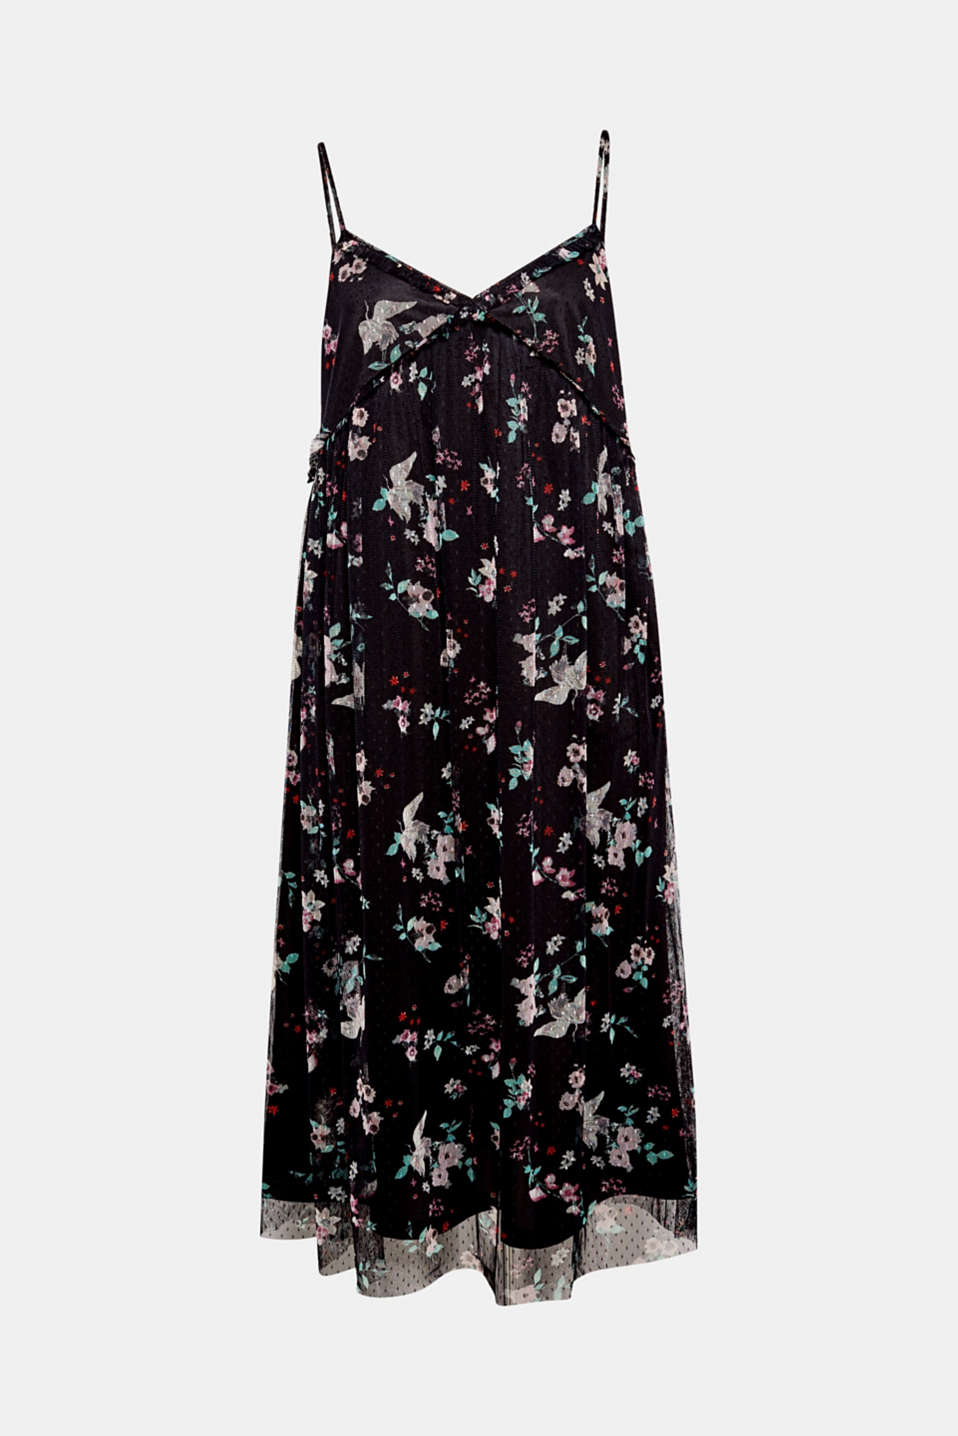 Inspired by the Orient, this tent dress is made of chiffon with a floral print and comes with adjustable spaghetti straps!